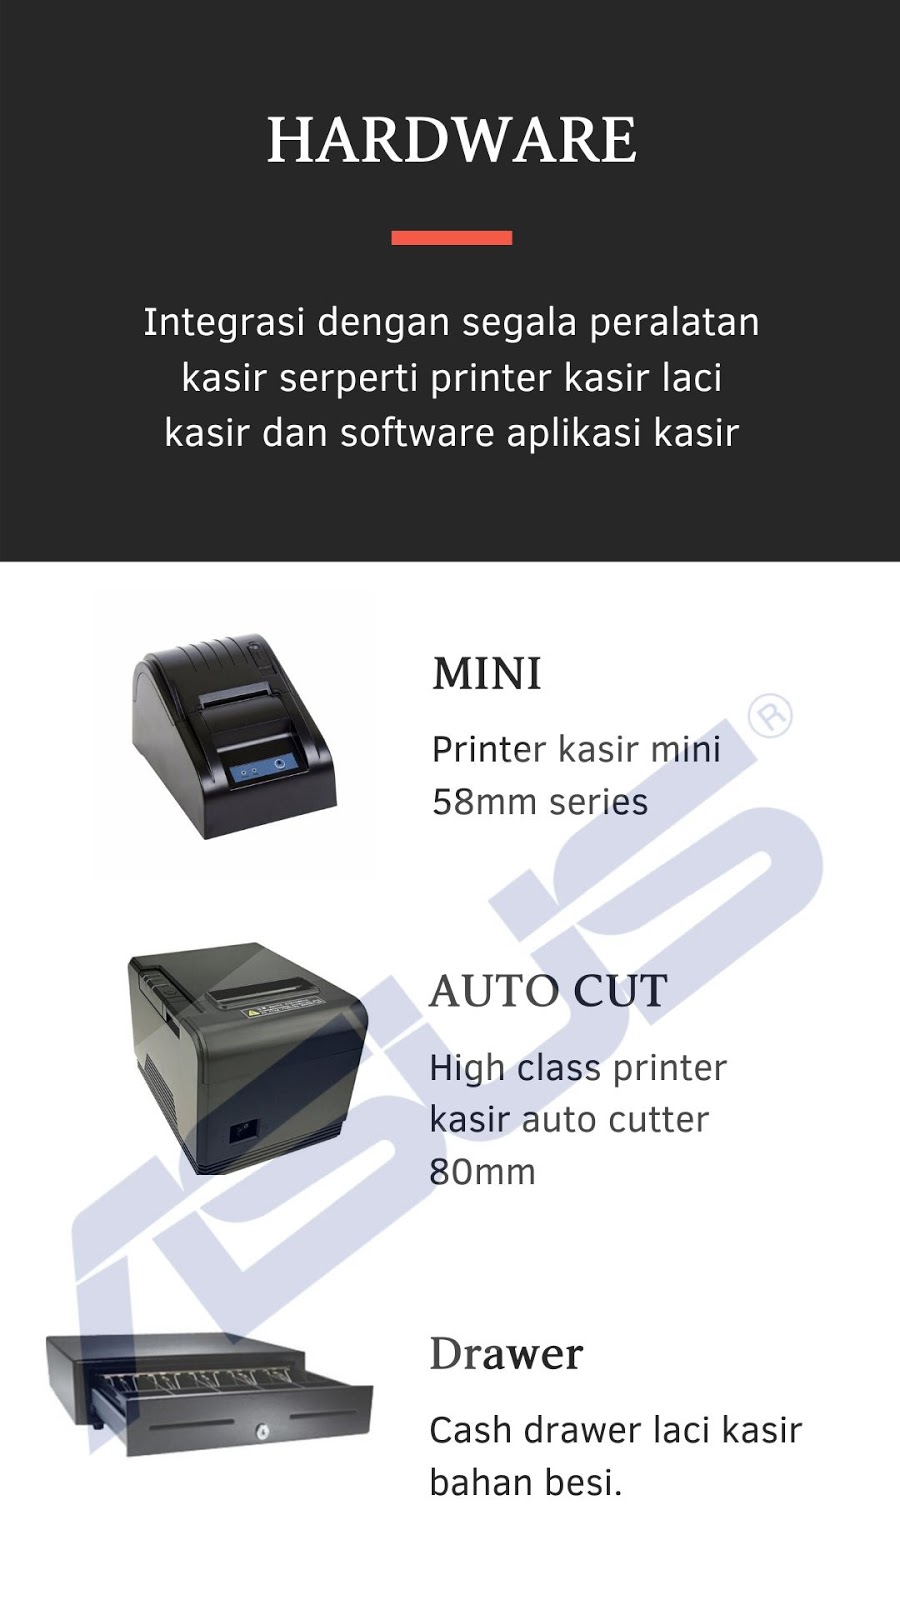 ALL IN ONE TOUCHSCREEN POINT OF SALE ASUS - harga, all in one, all in one point of sale, all in one pos, all in one touchscreen, ASUS, kasir, list, mesin, MESIN KASIR, mesin kasir online, online, point of sale, pos, touchscreen, touchscreen pos